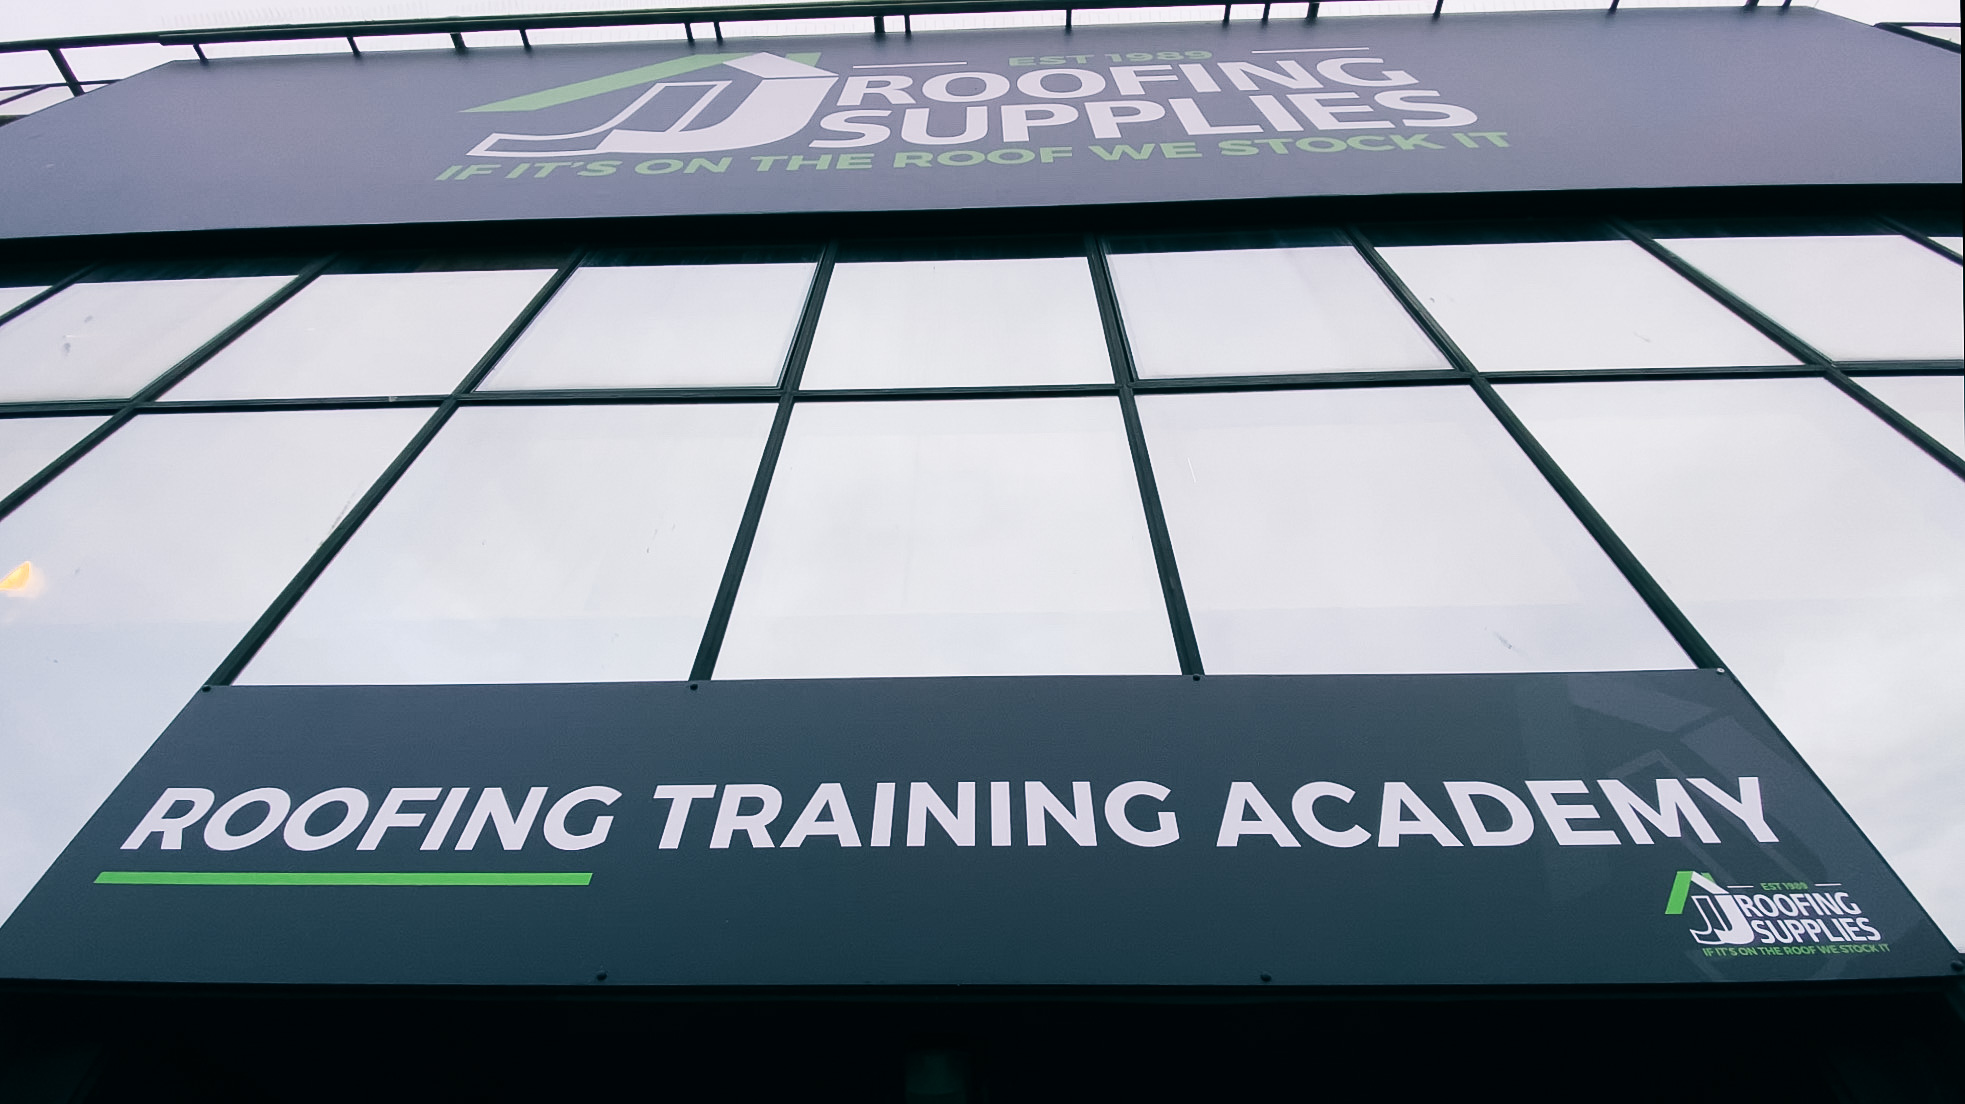 Roofing Training Academy Frontage 2020